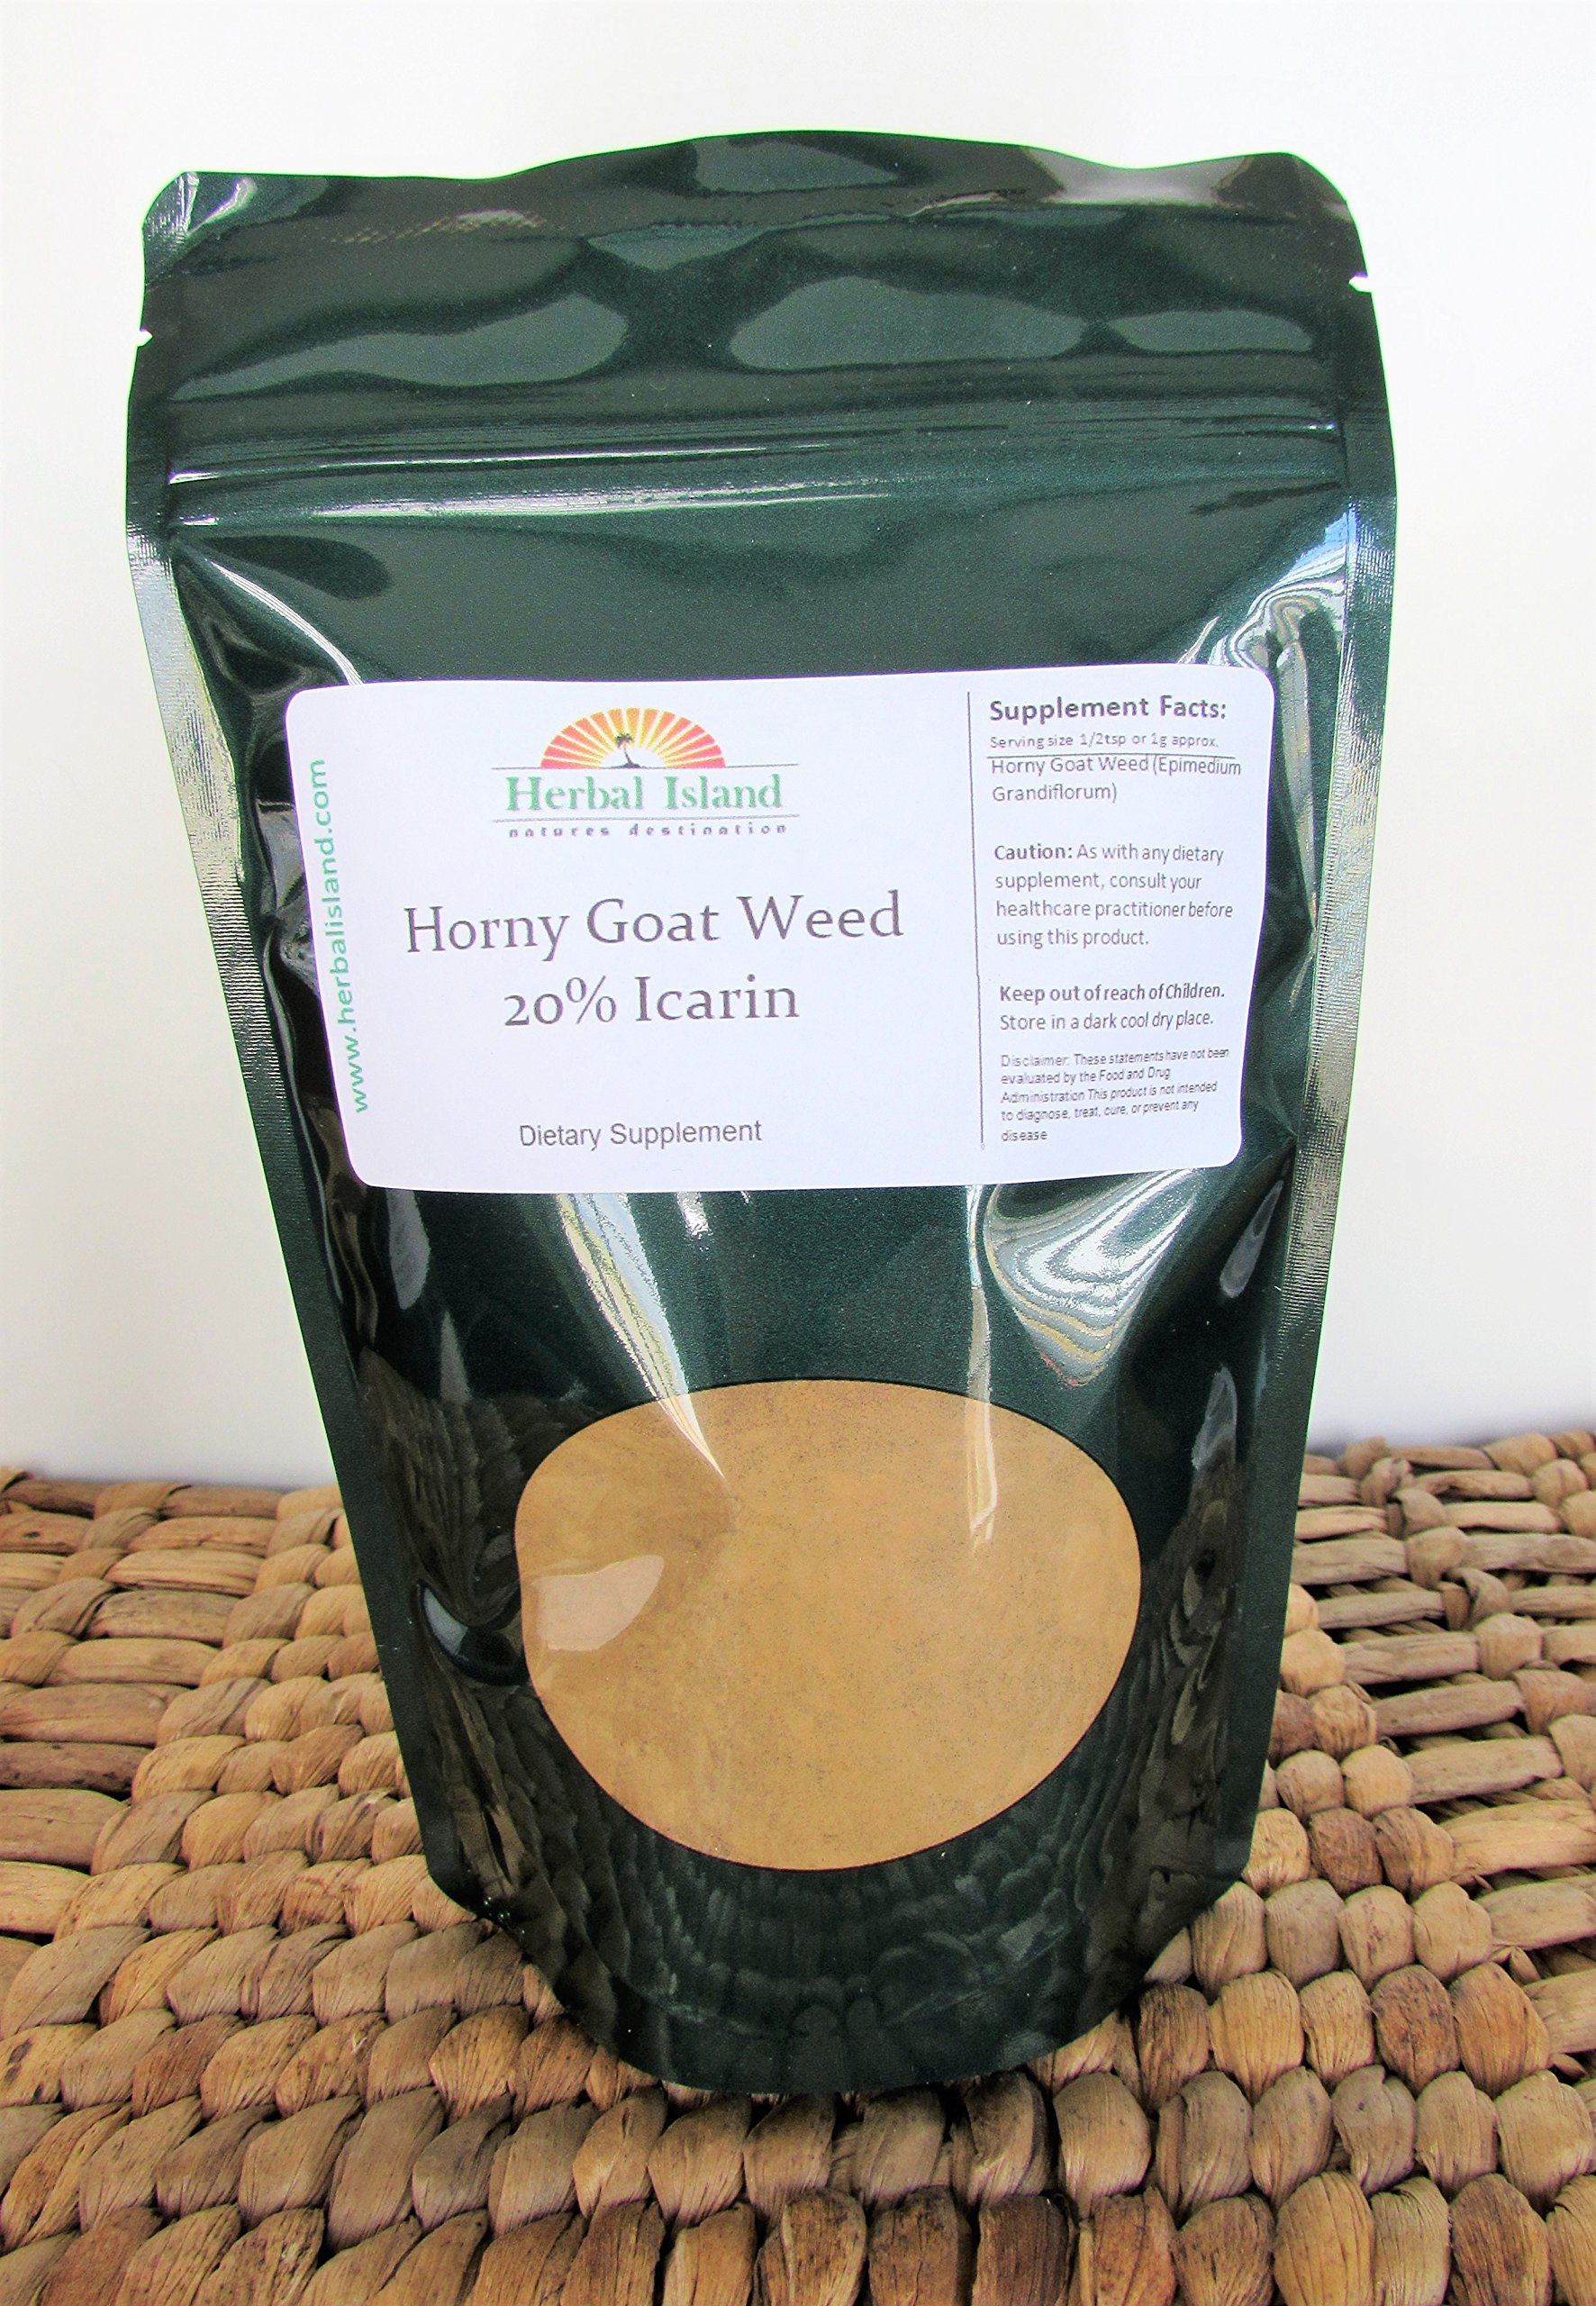 Horny Goat Weed Extract Powder 1lb or 16oz - 20% Icarin